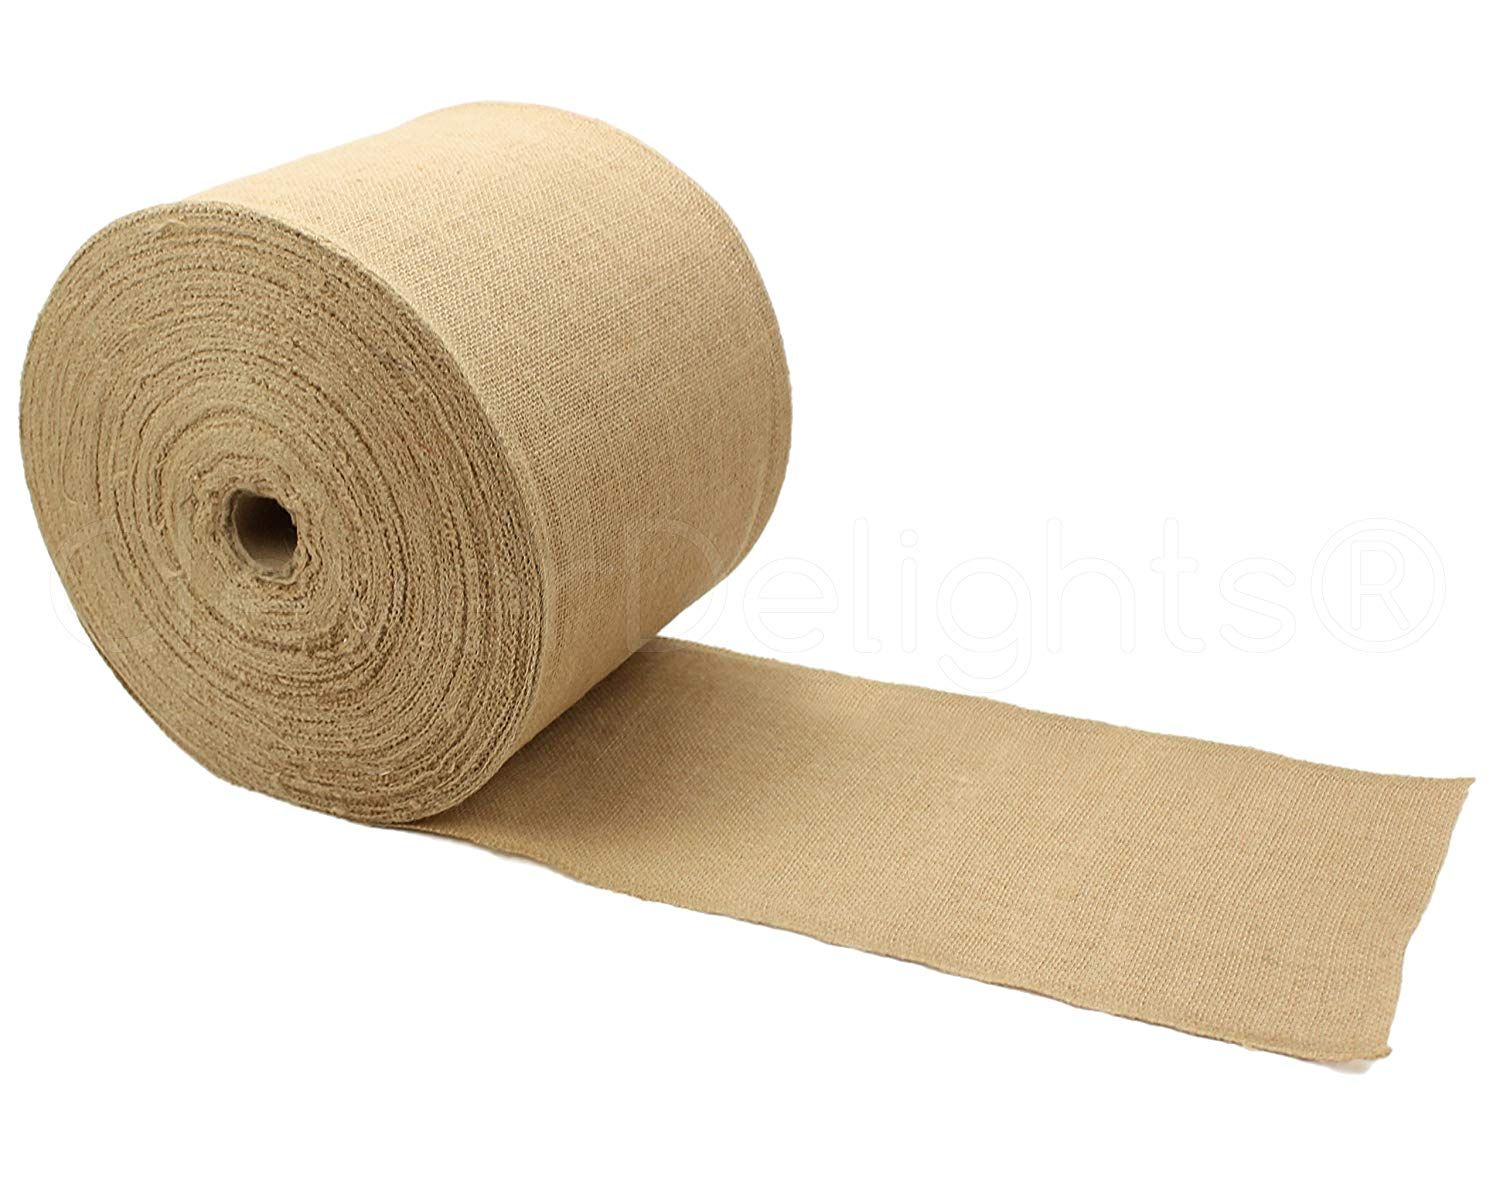 Cleverdelights 6 Premium Burlap Roll 100 Yards No Fray Finished Edges Natural Jute Burlap Fabric Click Image T In 2020 Burlap Rolls Burlap Fabric Natural Jute